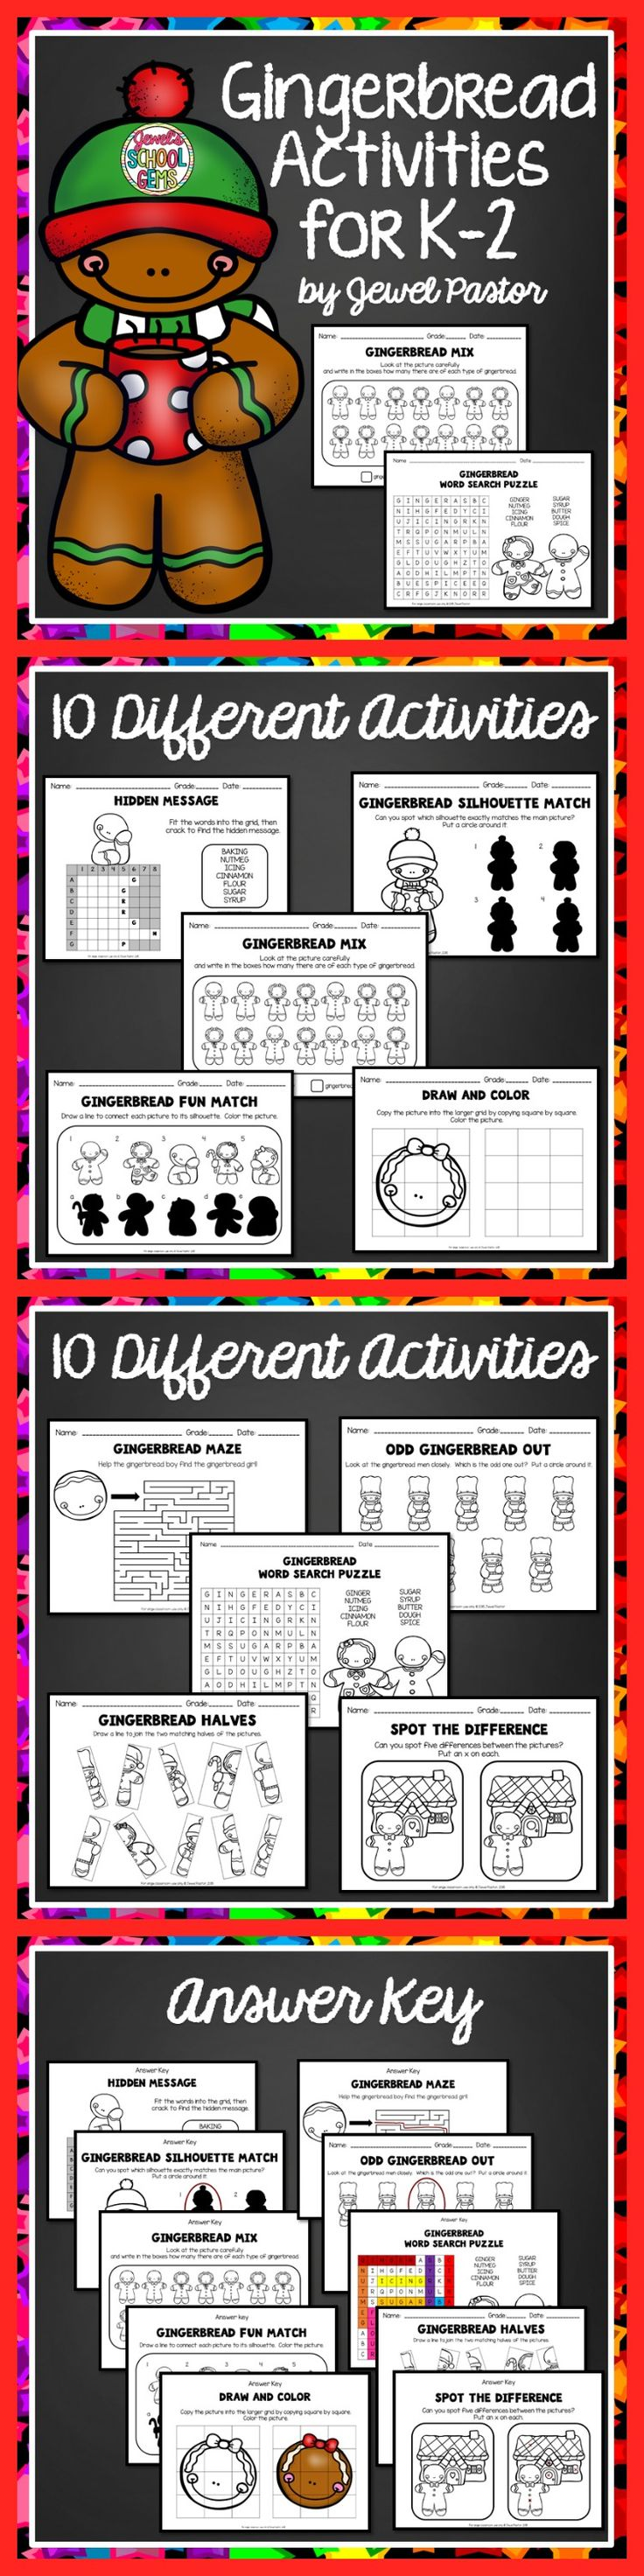 Gingerbread Activities For K To 2 This 20 Page Packet Is Composed Of Ex Gingerbread Activities Gingerbread Man Activities Kindergarten Gingerbread Worksheets [ 2944 x 736 Pixel ]